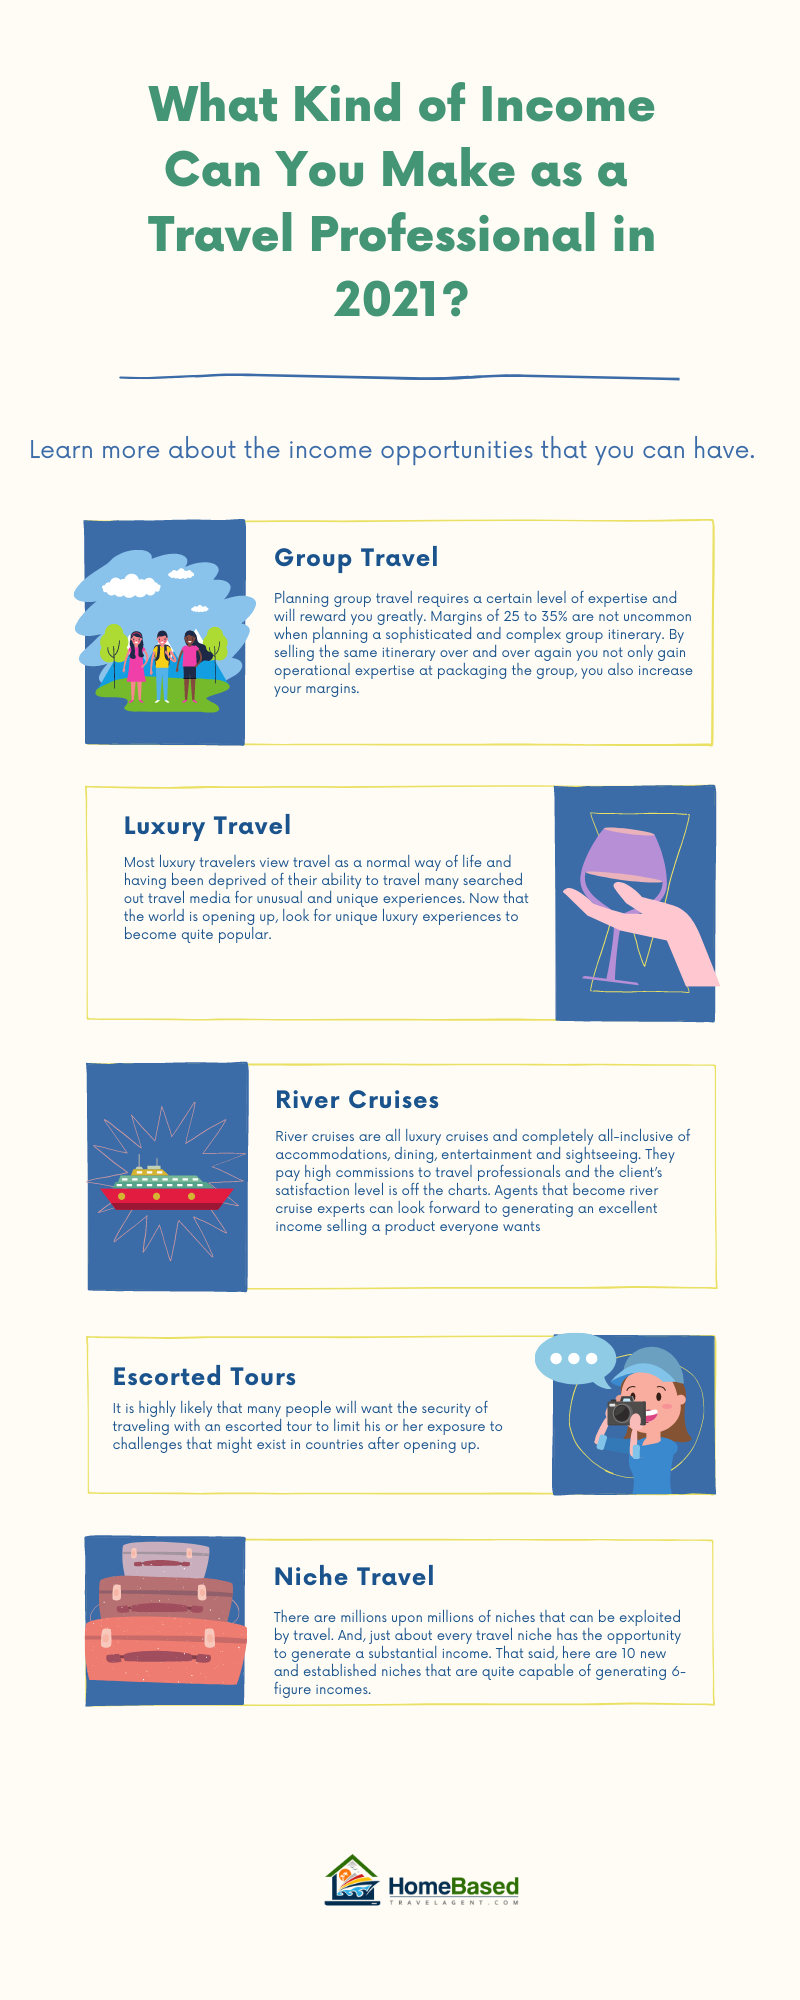 What-Kind-of-Income-can-a-Travel-Agent-Make-in-2021-HomeBasedTravelAgent.com-Infographic